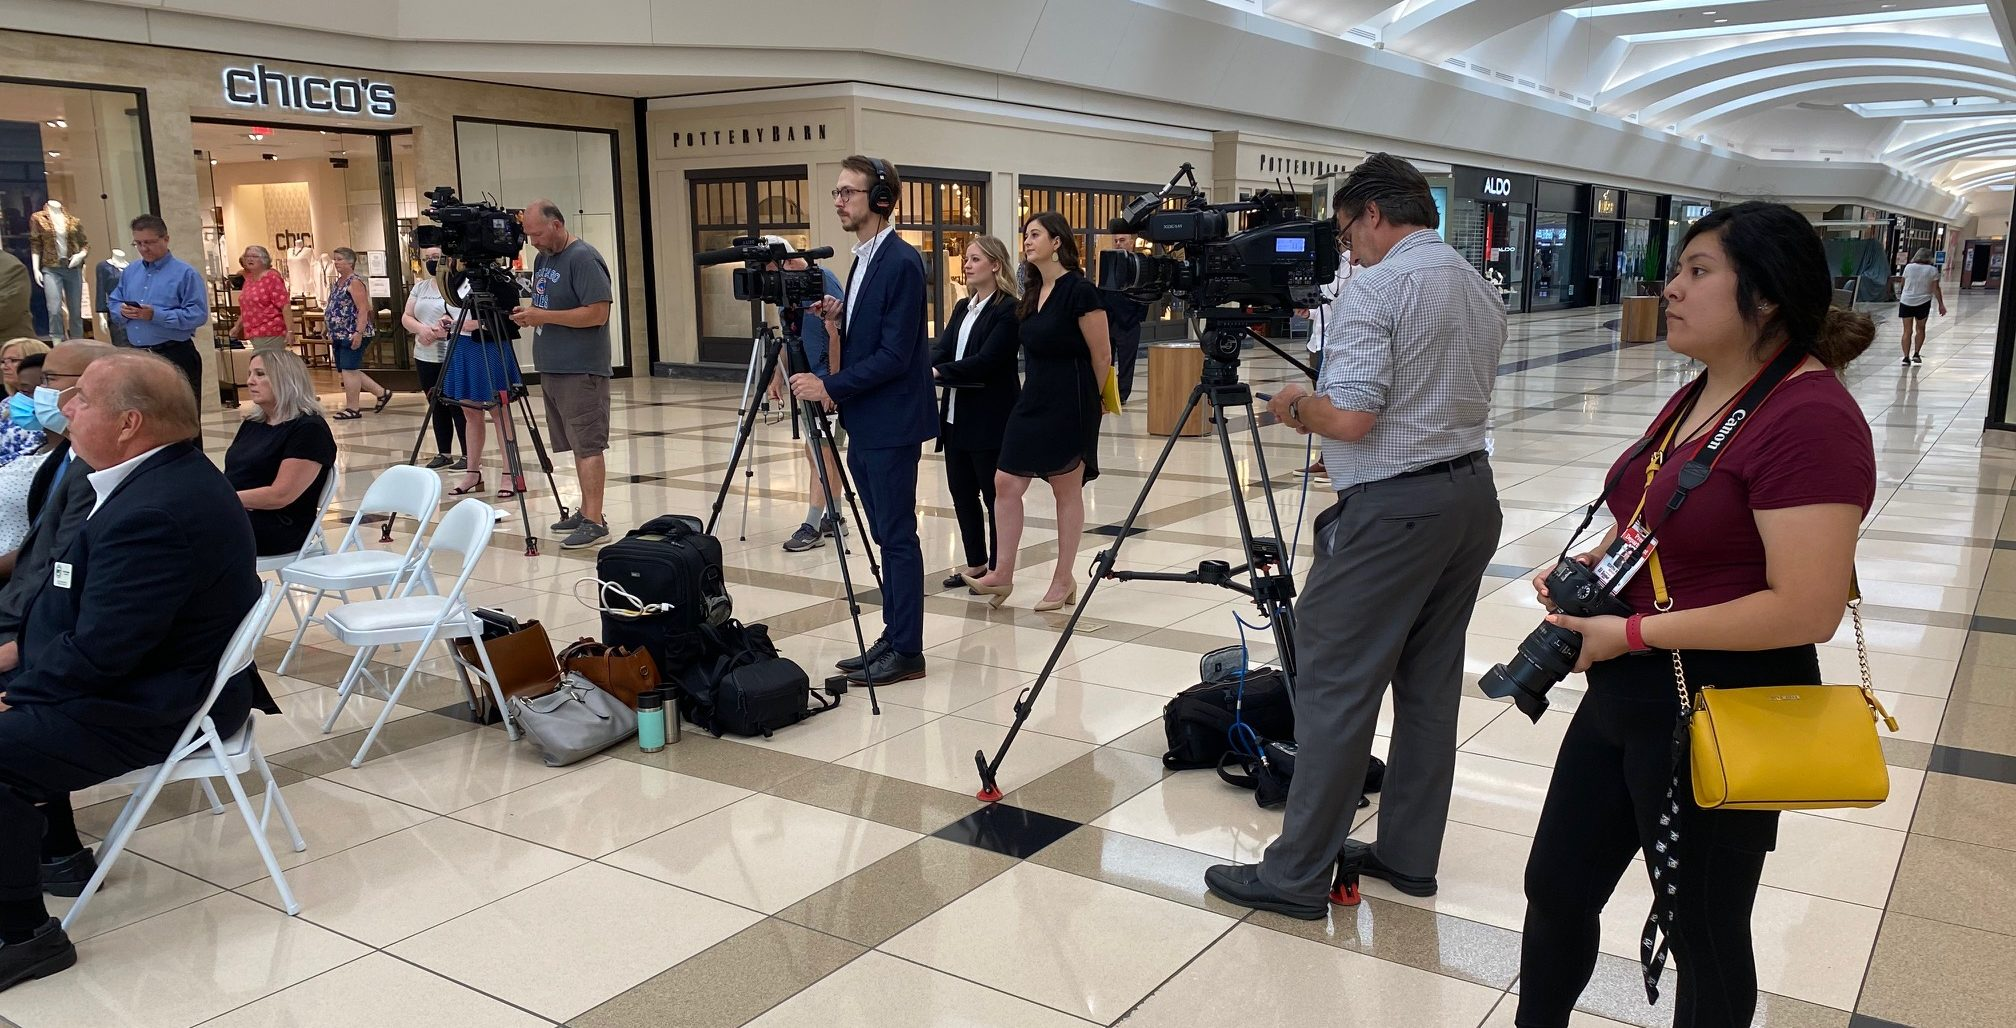 Hunter, Chiara and Lisa behind a camera for a mall announcement, next two TV reporter and a photographer in advance of media interviews